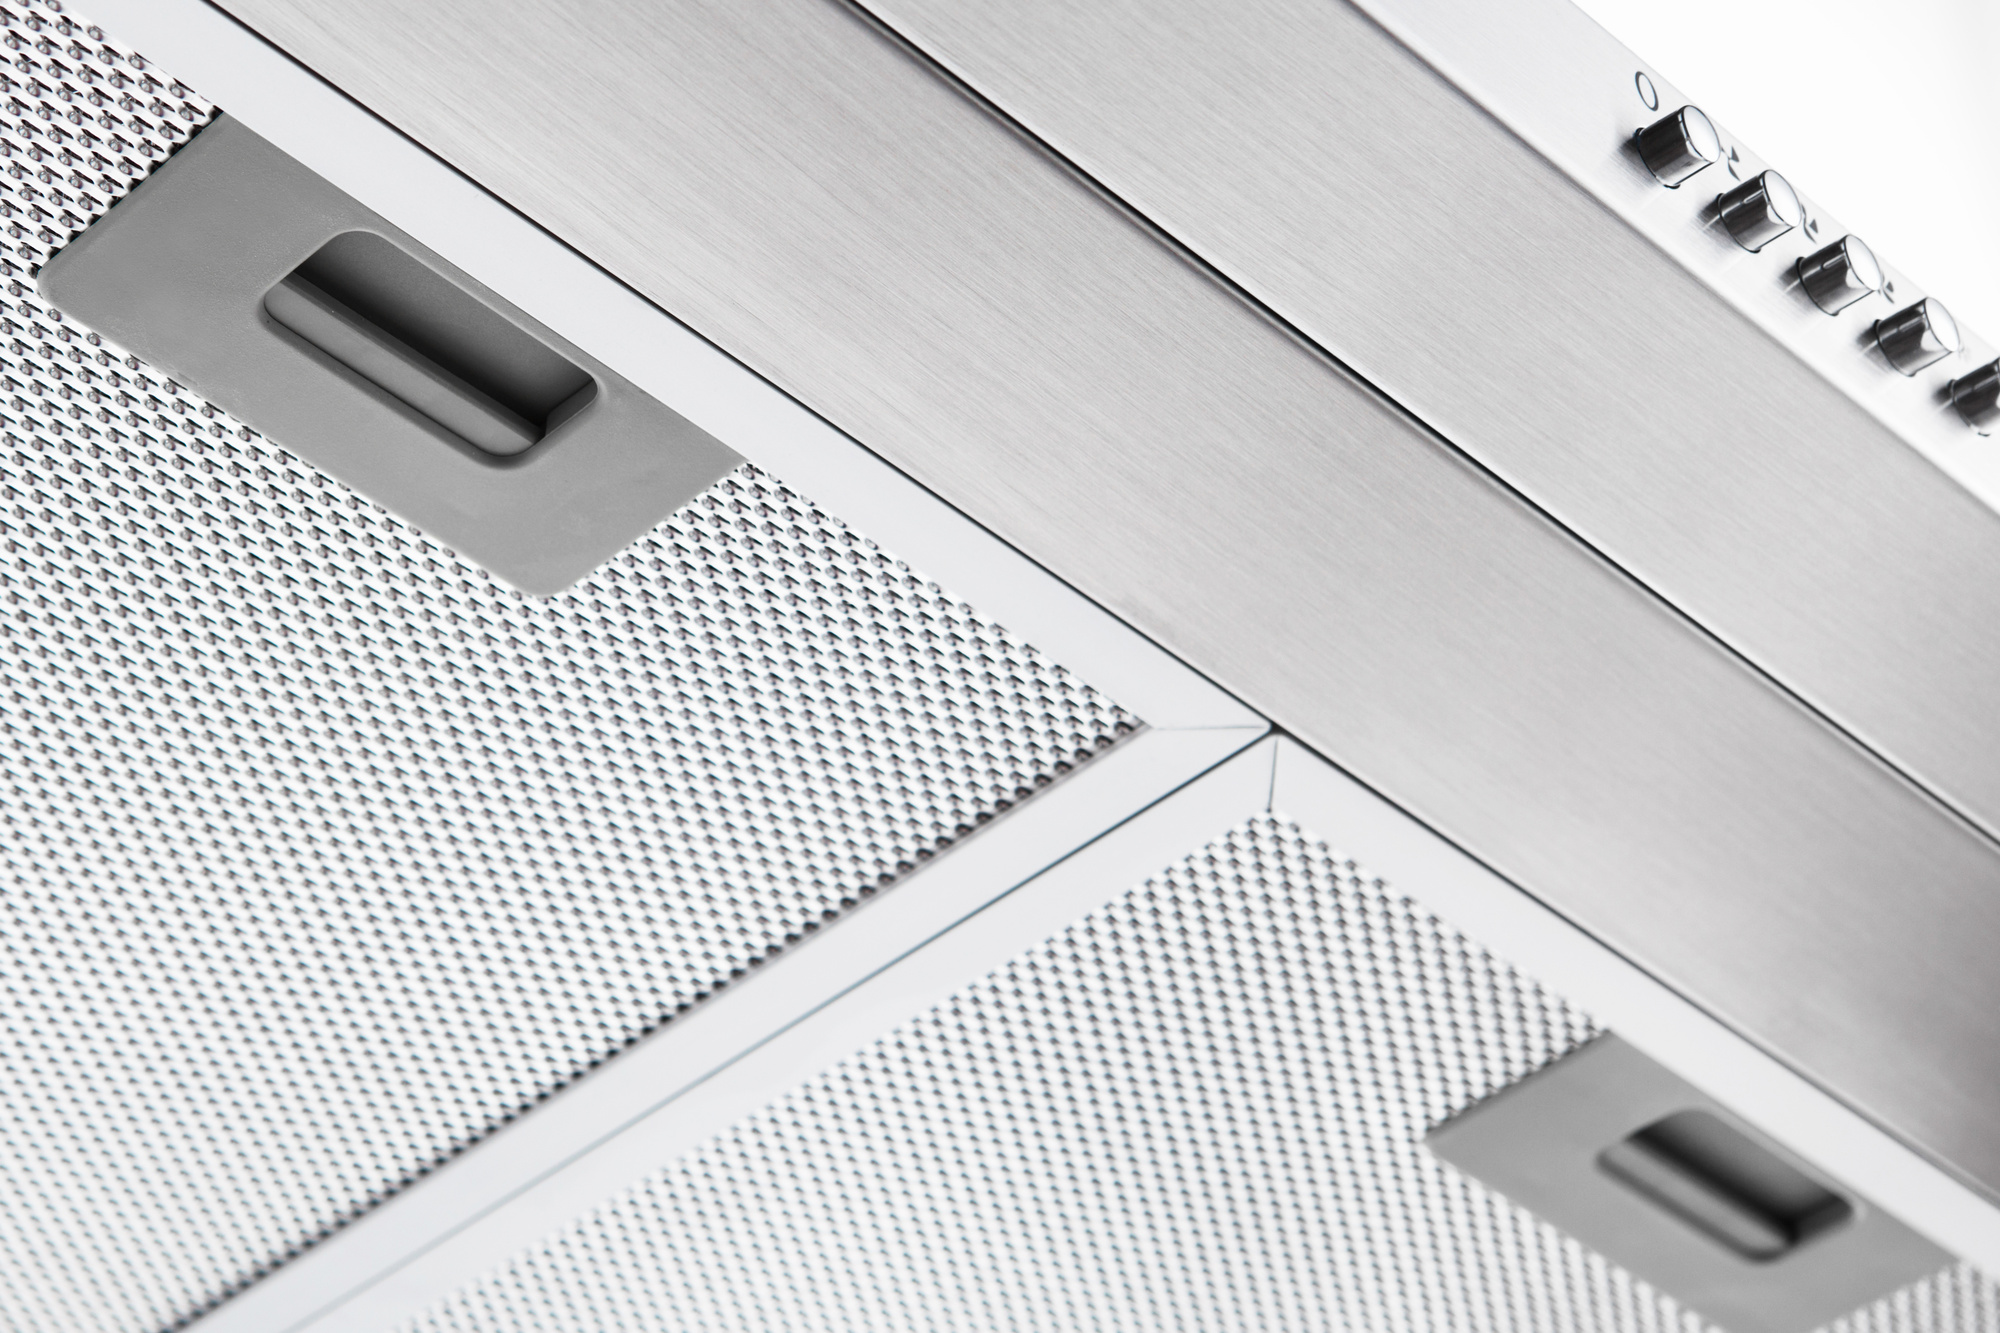 6 things to consider when choosing a commercial kitchen exhaust fan